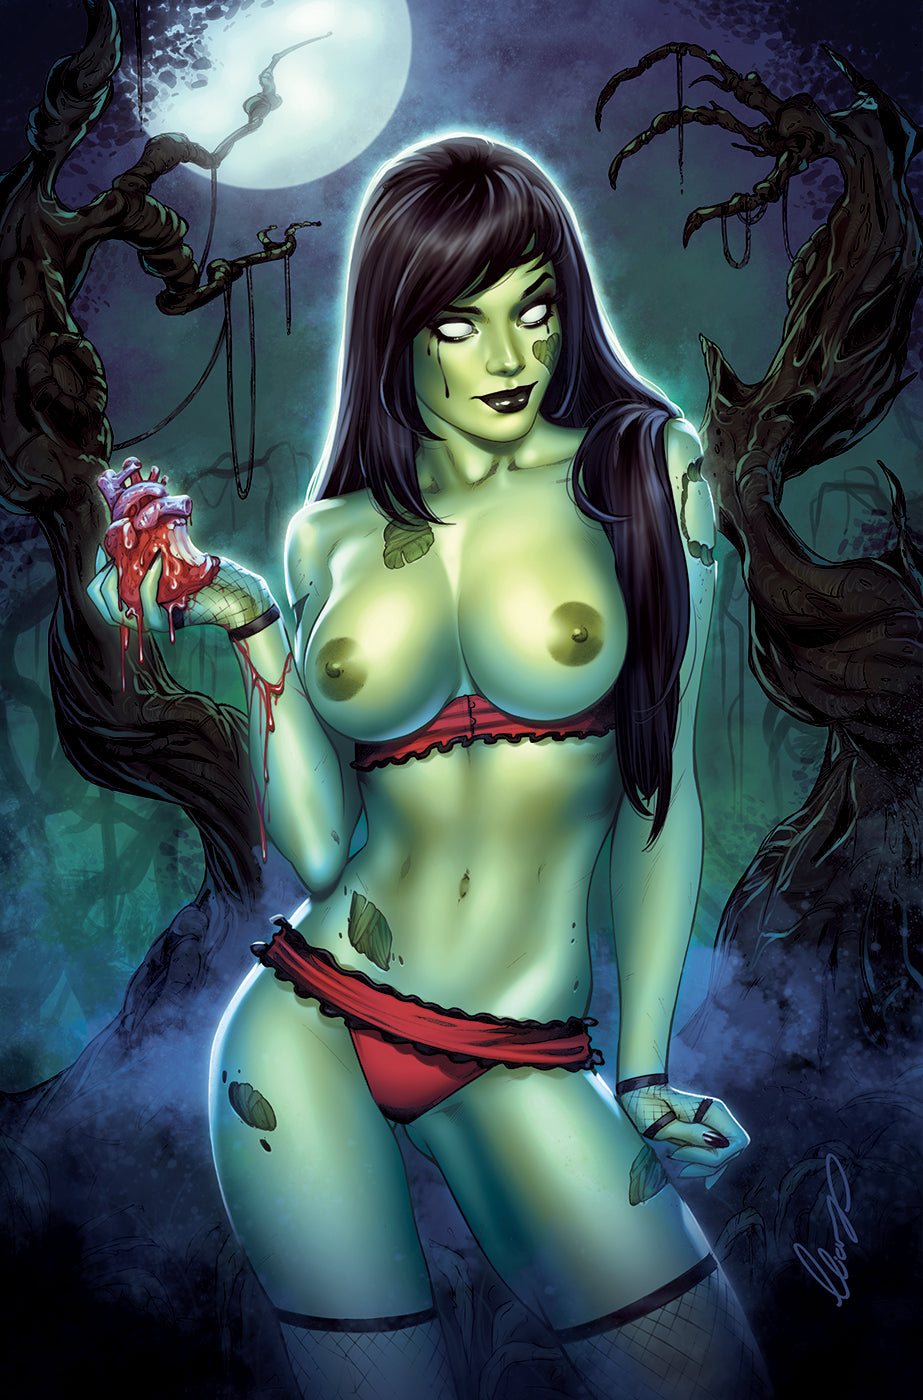 07/18/2018 ZOMBIE TRAMP #50 SSCO EXCLUSIVE ELIAS CHATZOUDIS RISQUE VIRGIN VARIANT (NOT NEAR MINT)